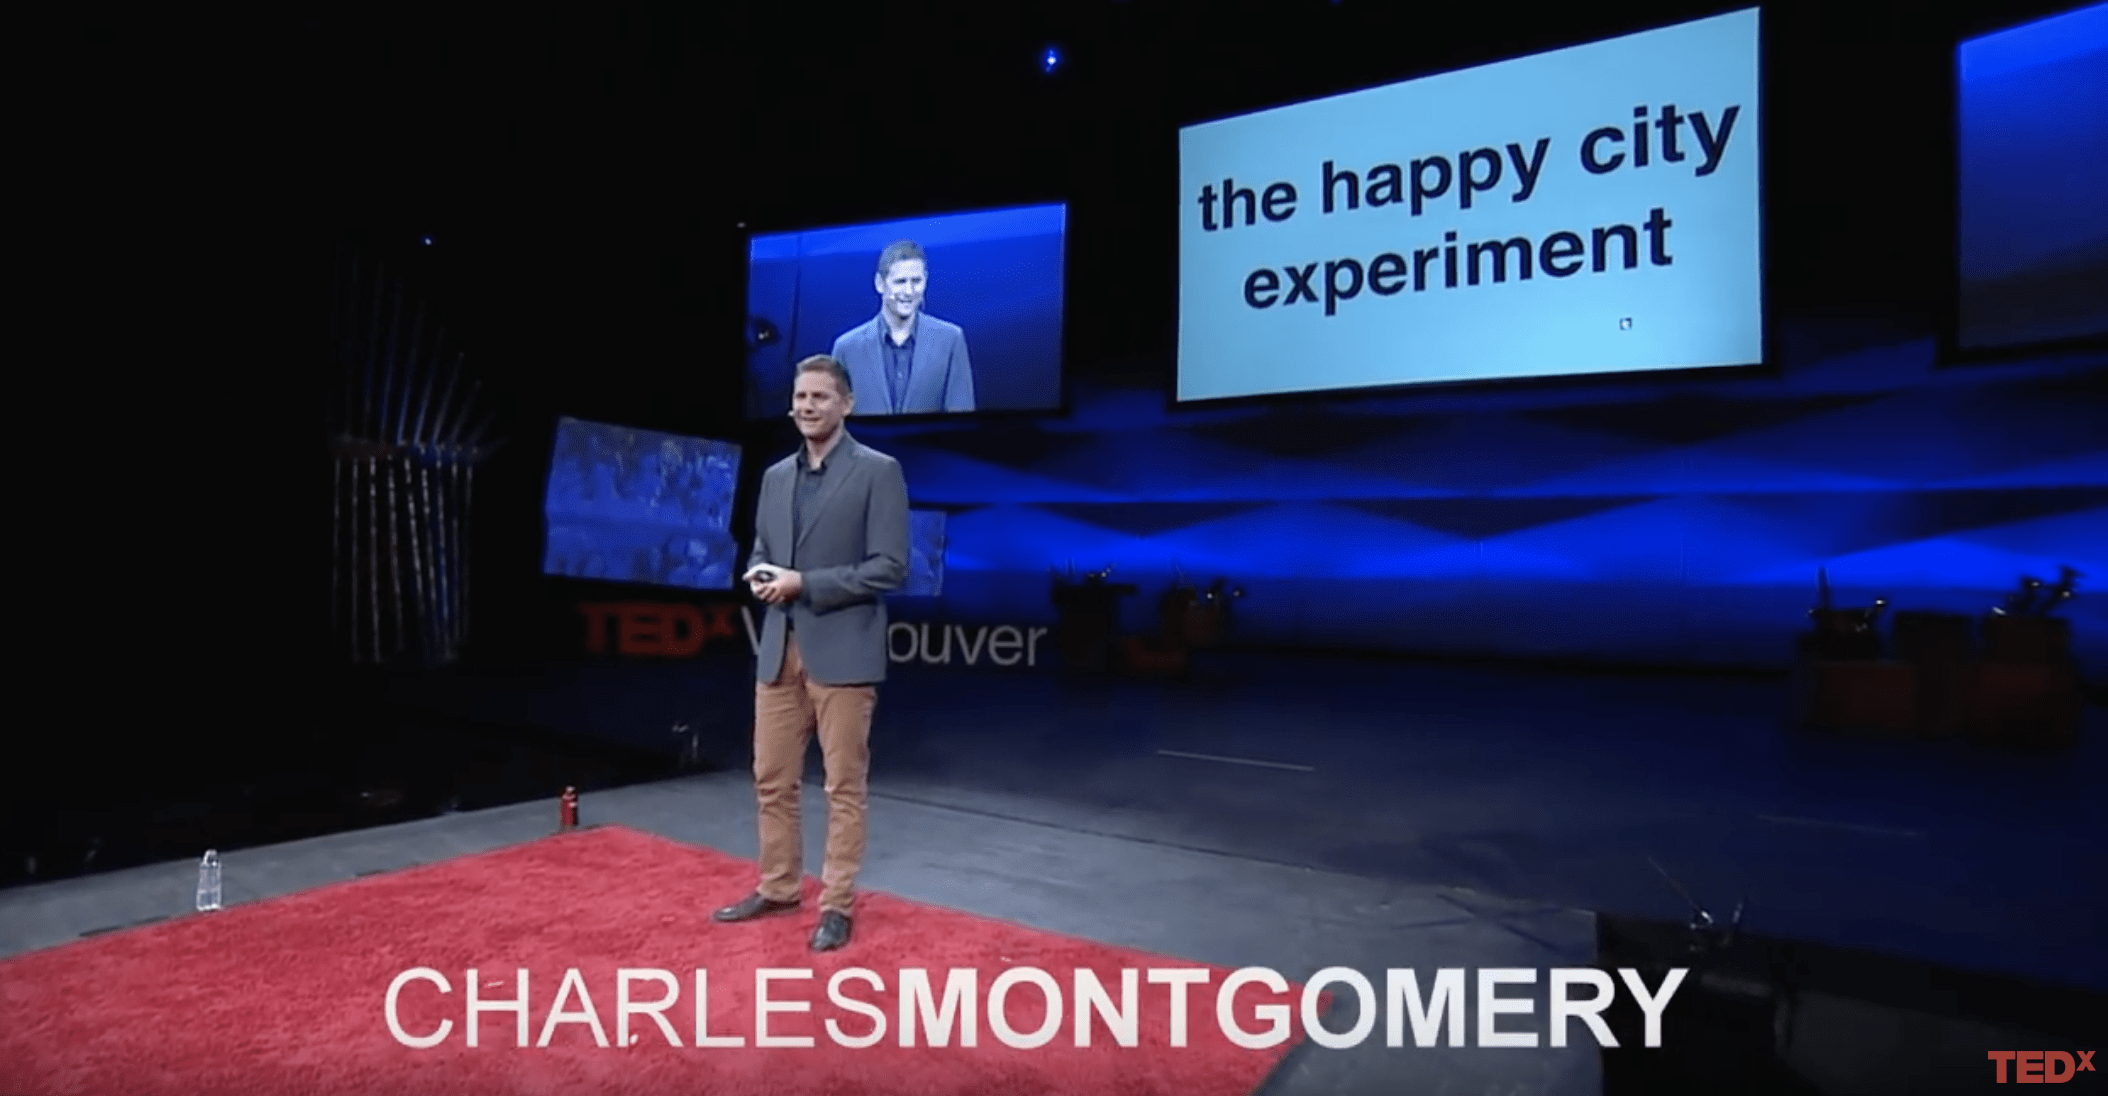 The happy city experiment | TEDxVancouver